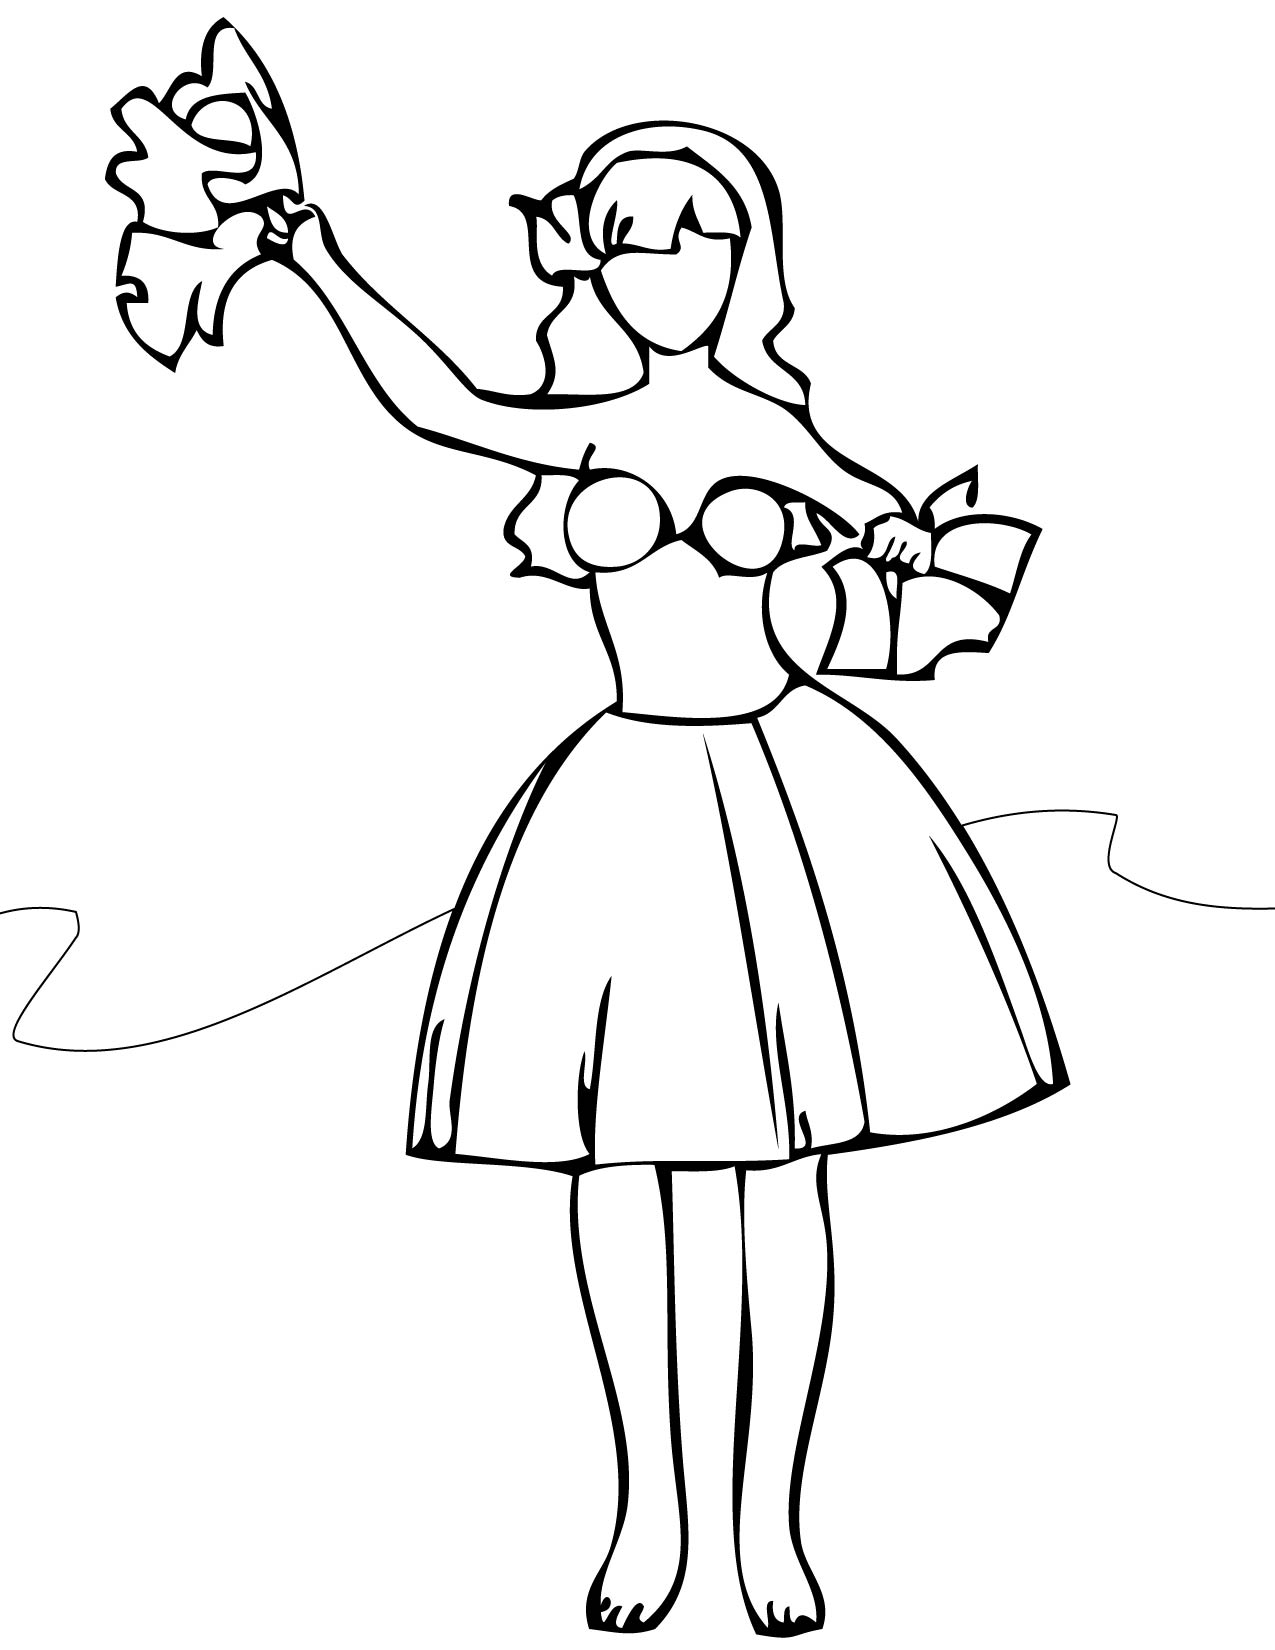 1275x1650 Unparalleled Hula Girl Coloring Page Last Chance Cool Design Ideas